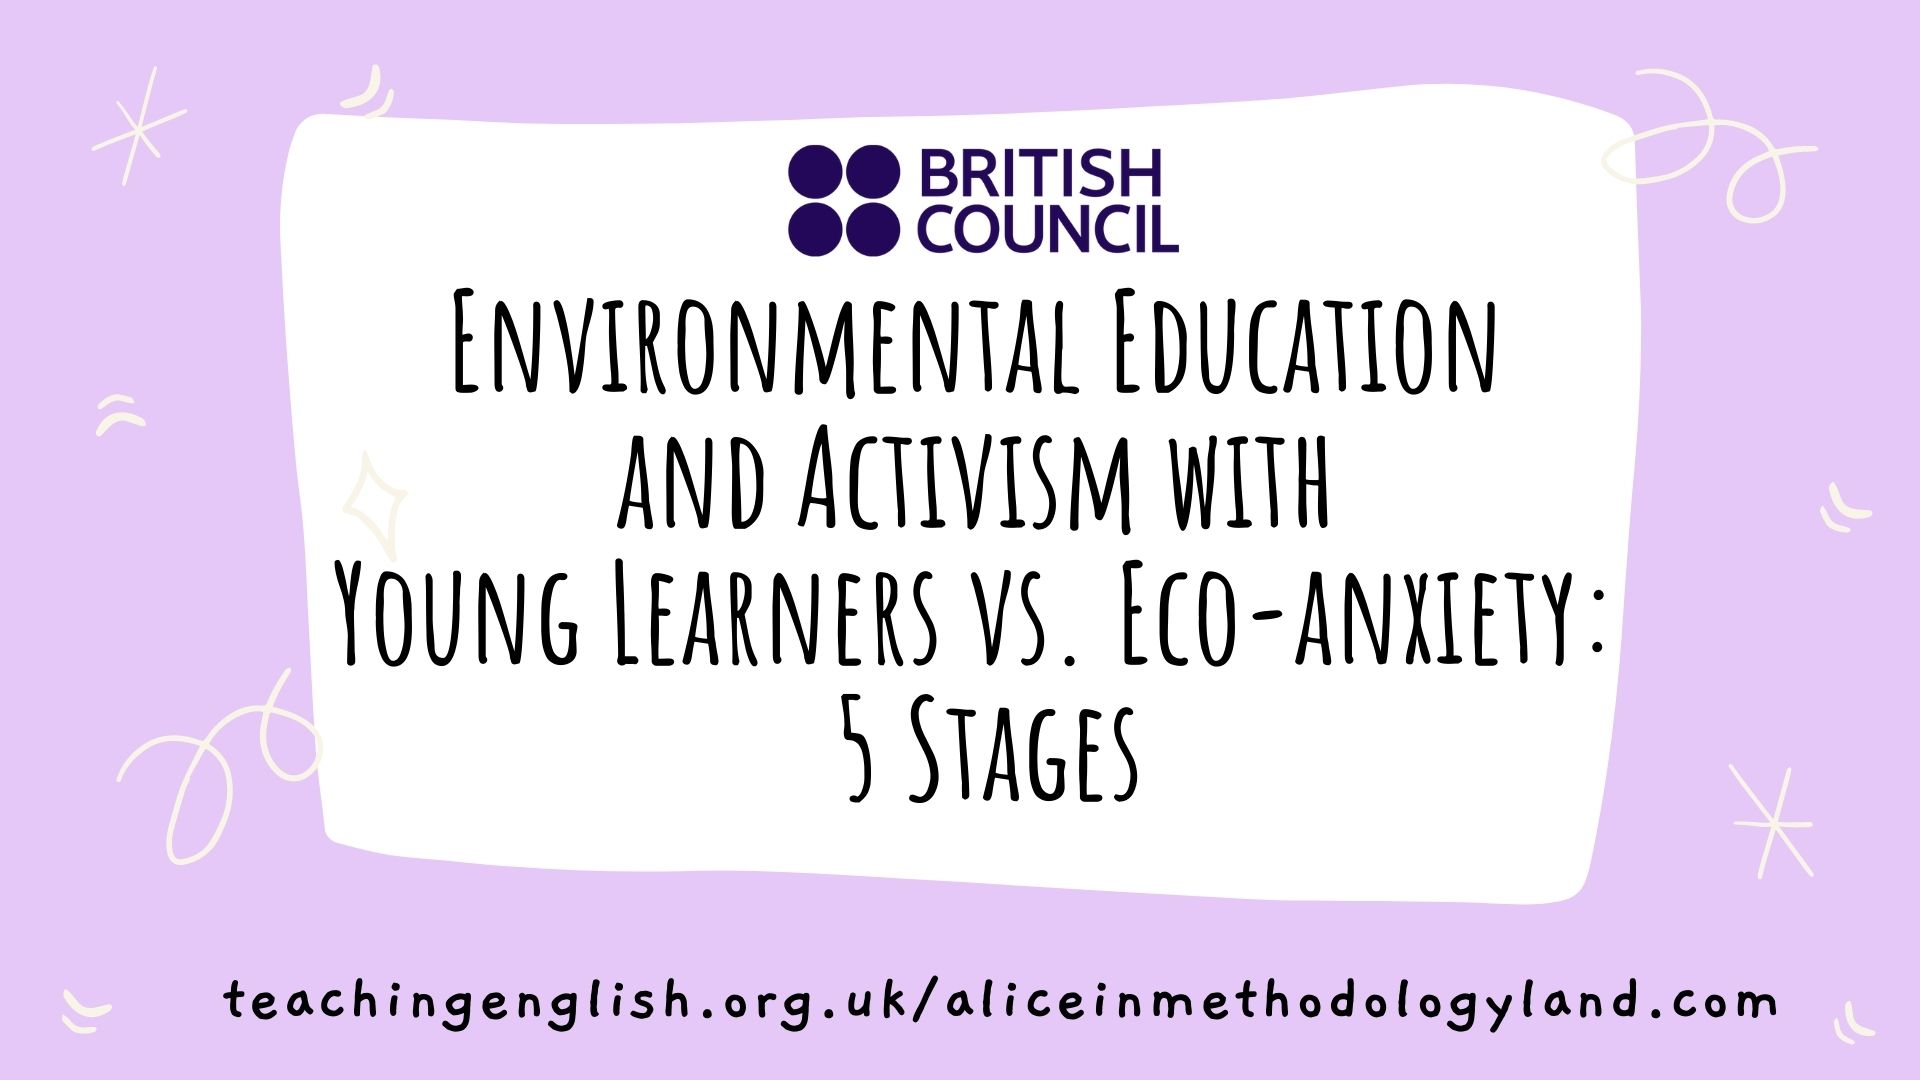 Environmental Education and Activism with Young Learners vs. Eco-anxiety: 5 Stages